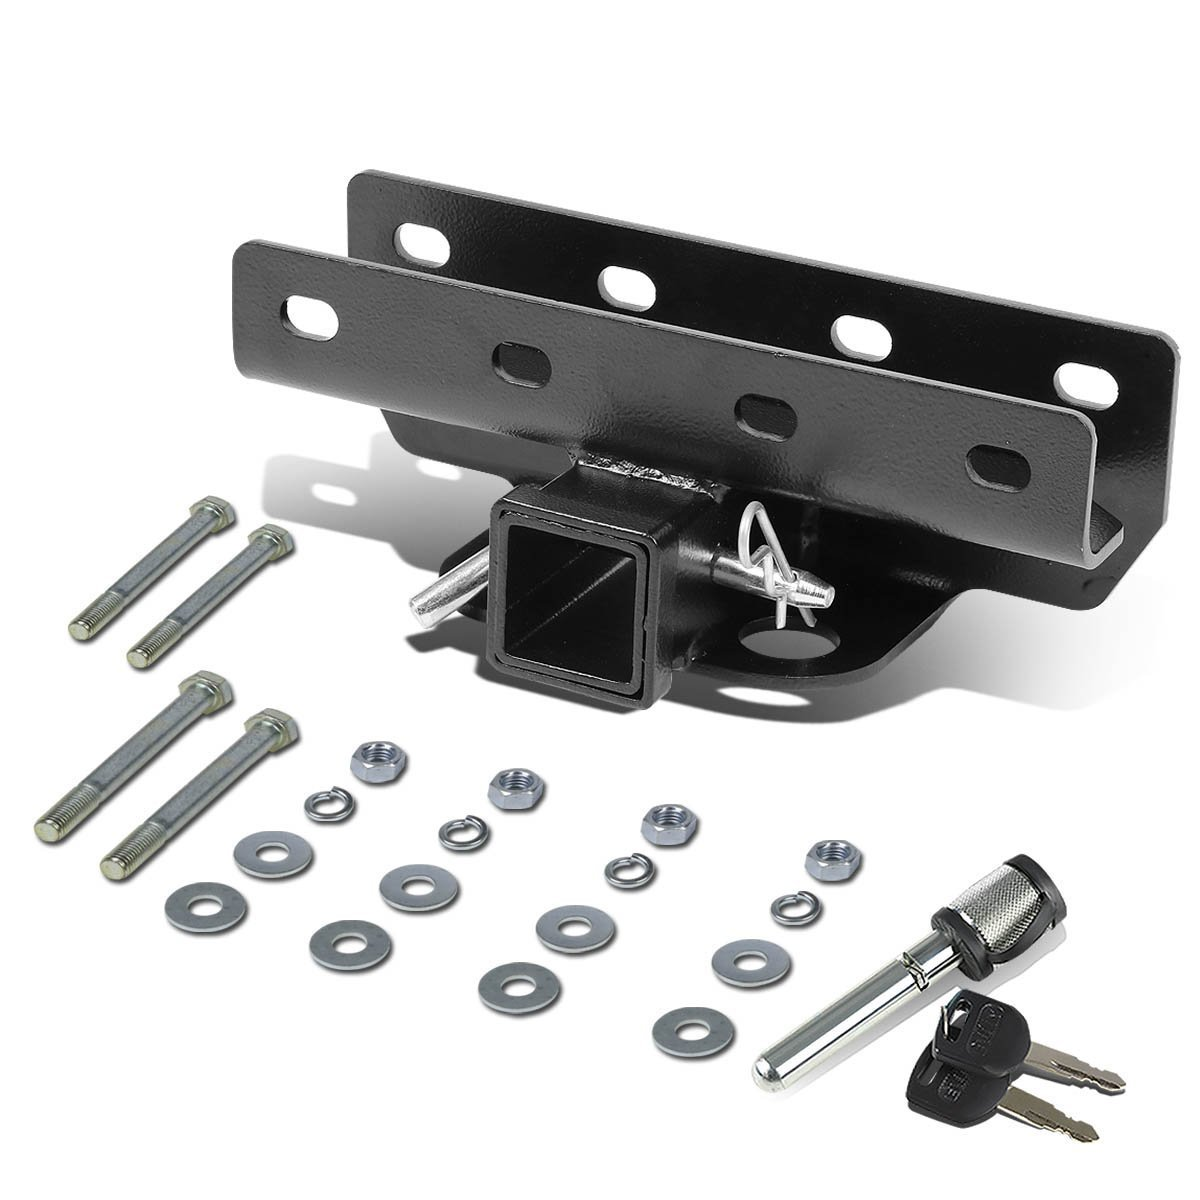 07 16 jeep wrangler class iii trailer hitch receiver rear. Black Bedroom Furniture Sets. Home Design Ideas